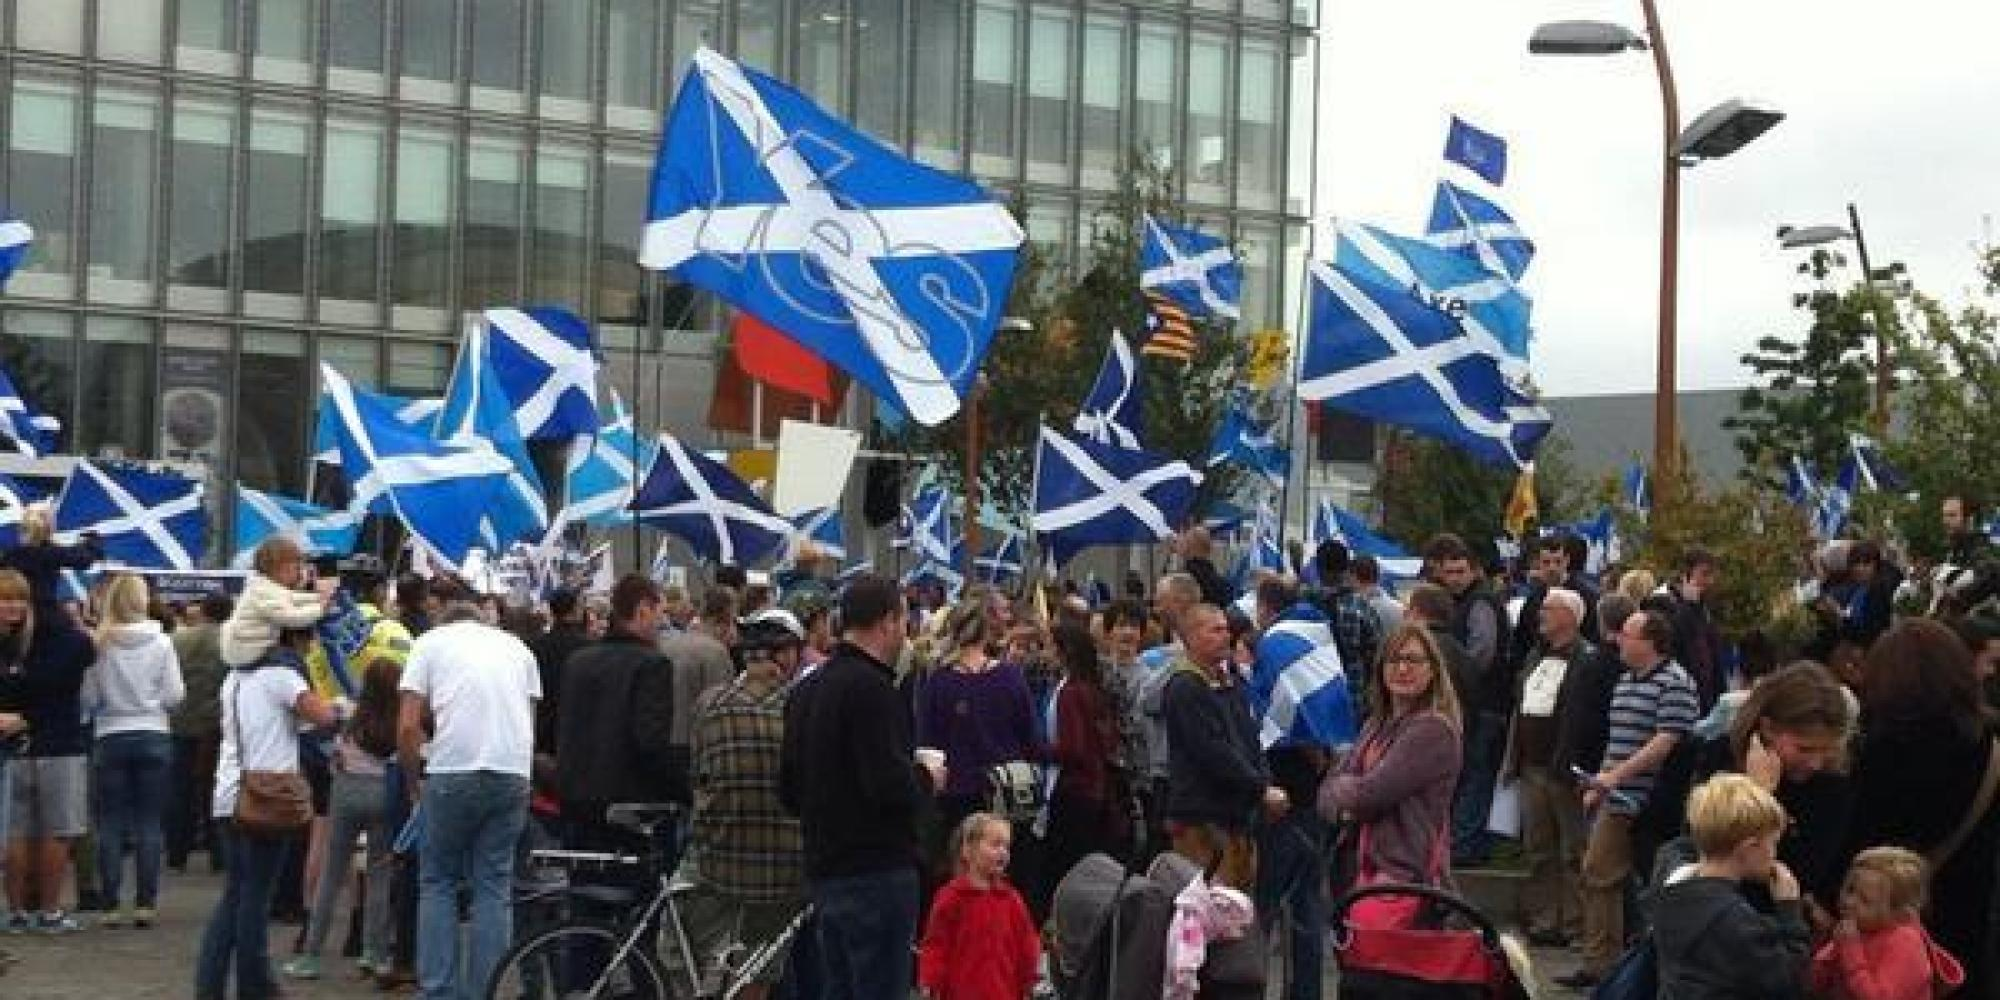 scottish independence Back in the 1970s, when the people of scotland had a vote on independence autonomy from england, scottish campaigners accused the english of were stealing their country's north sea oil revenues.